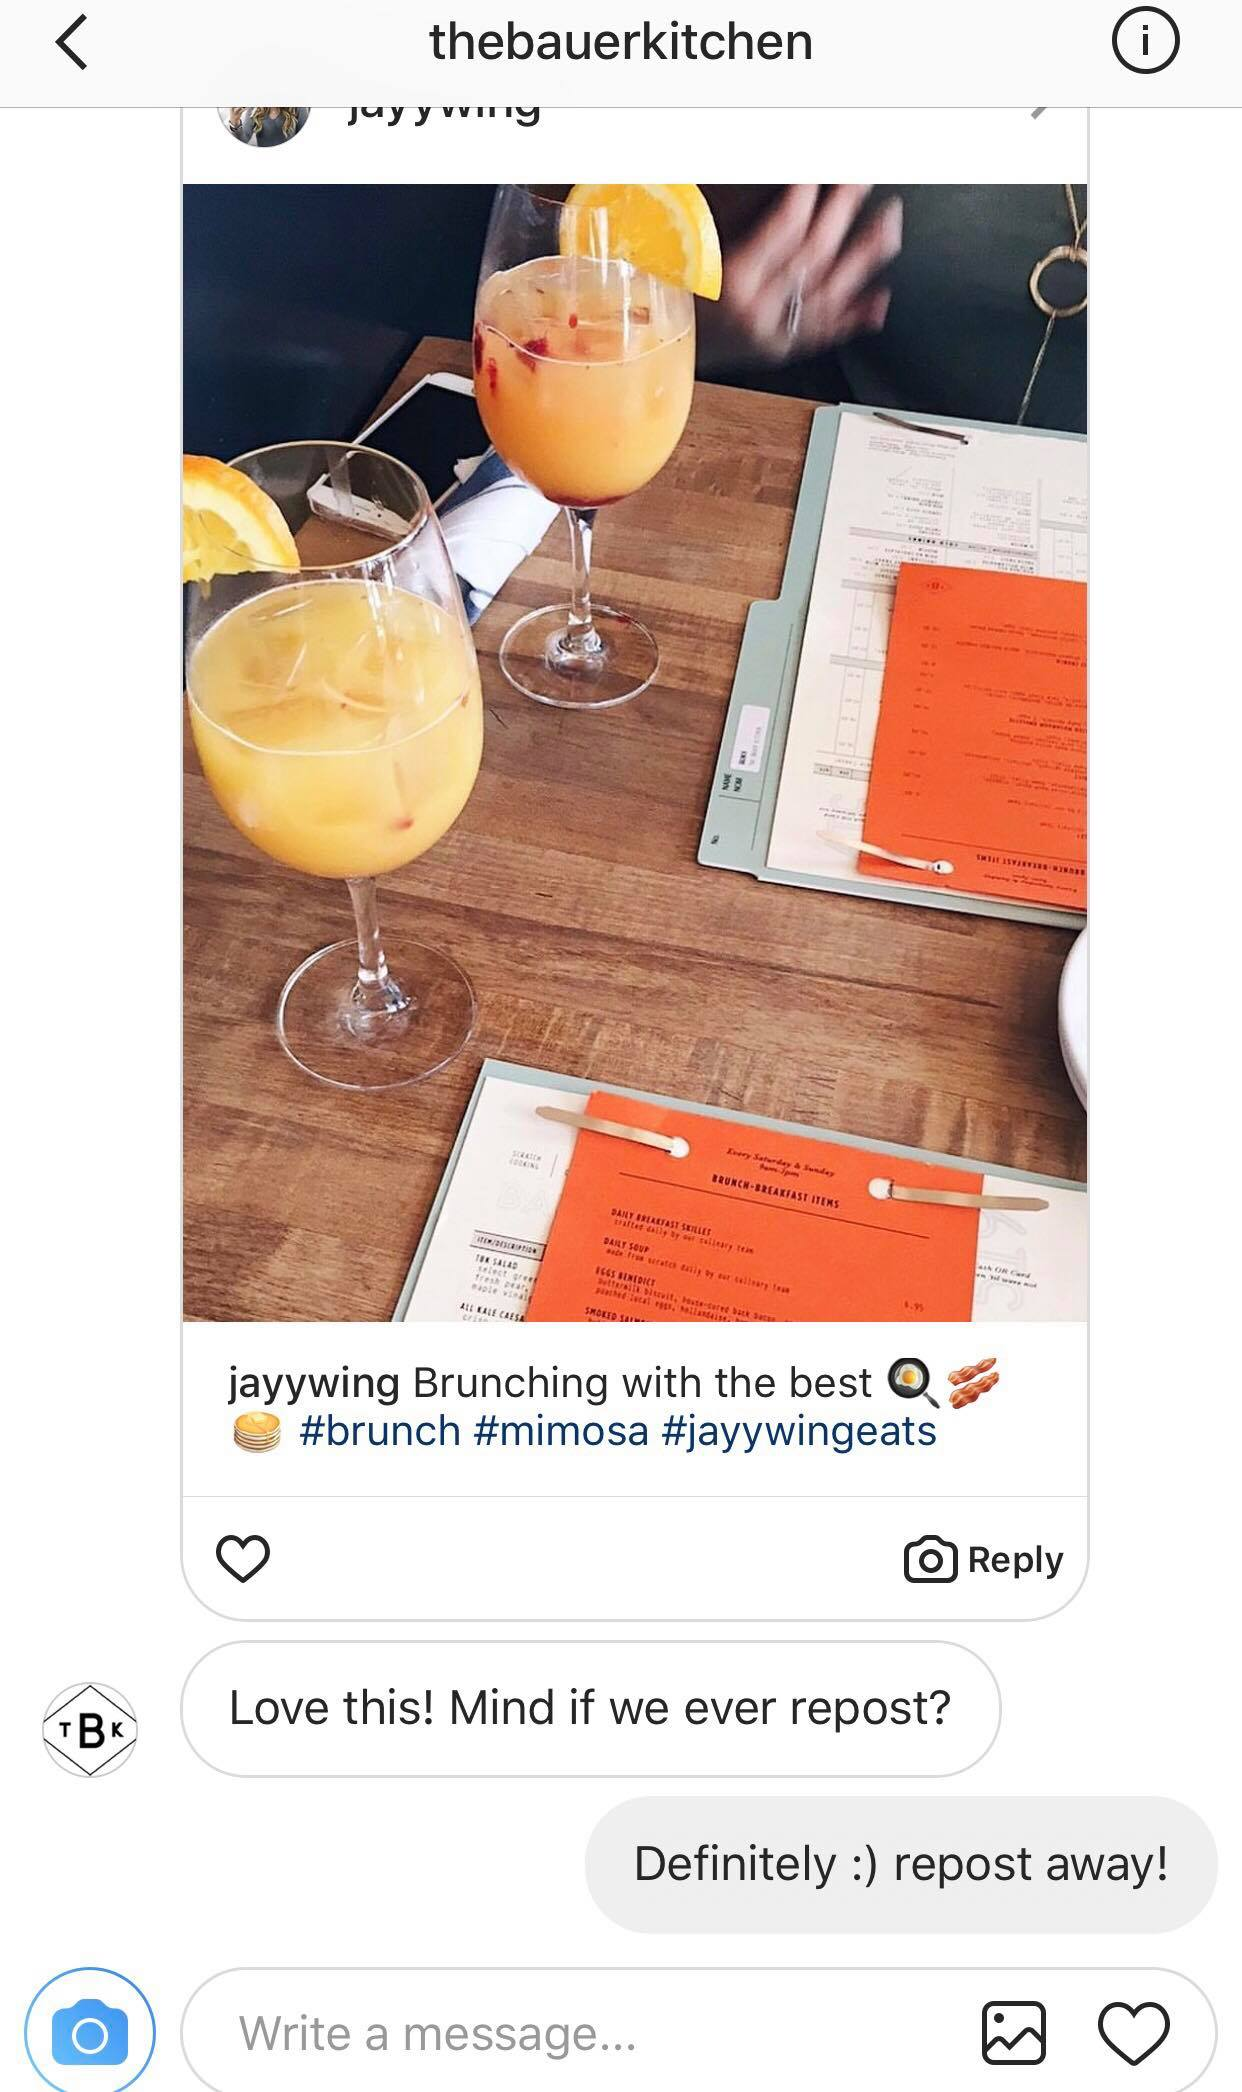 Bauer Kitchen Instagram repost request Best practices for reposting user-generated content